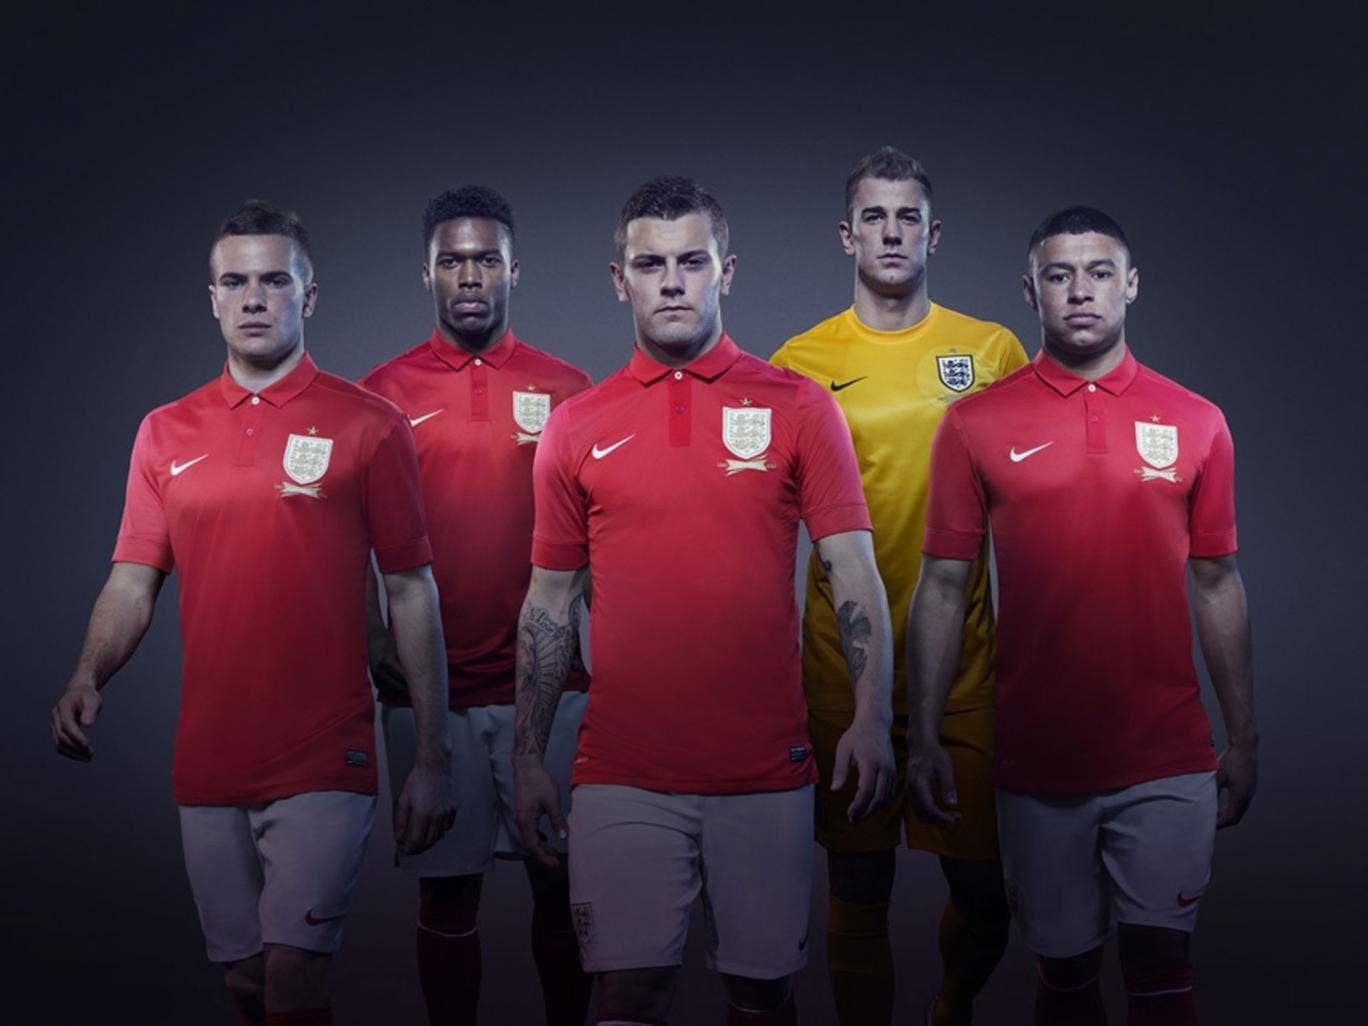 England's promotional photos for the new away kit focus on the younger players rather than the old guard